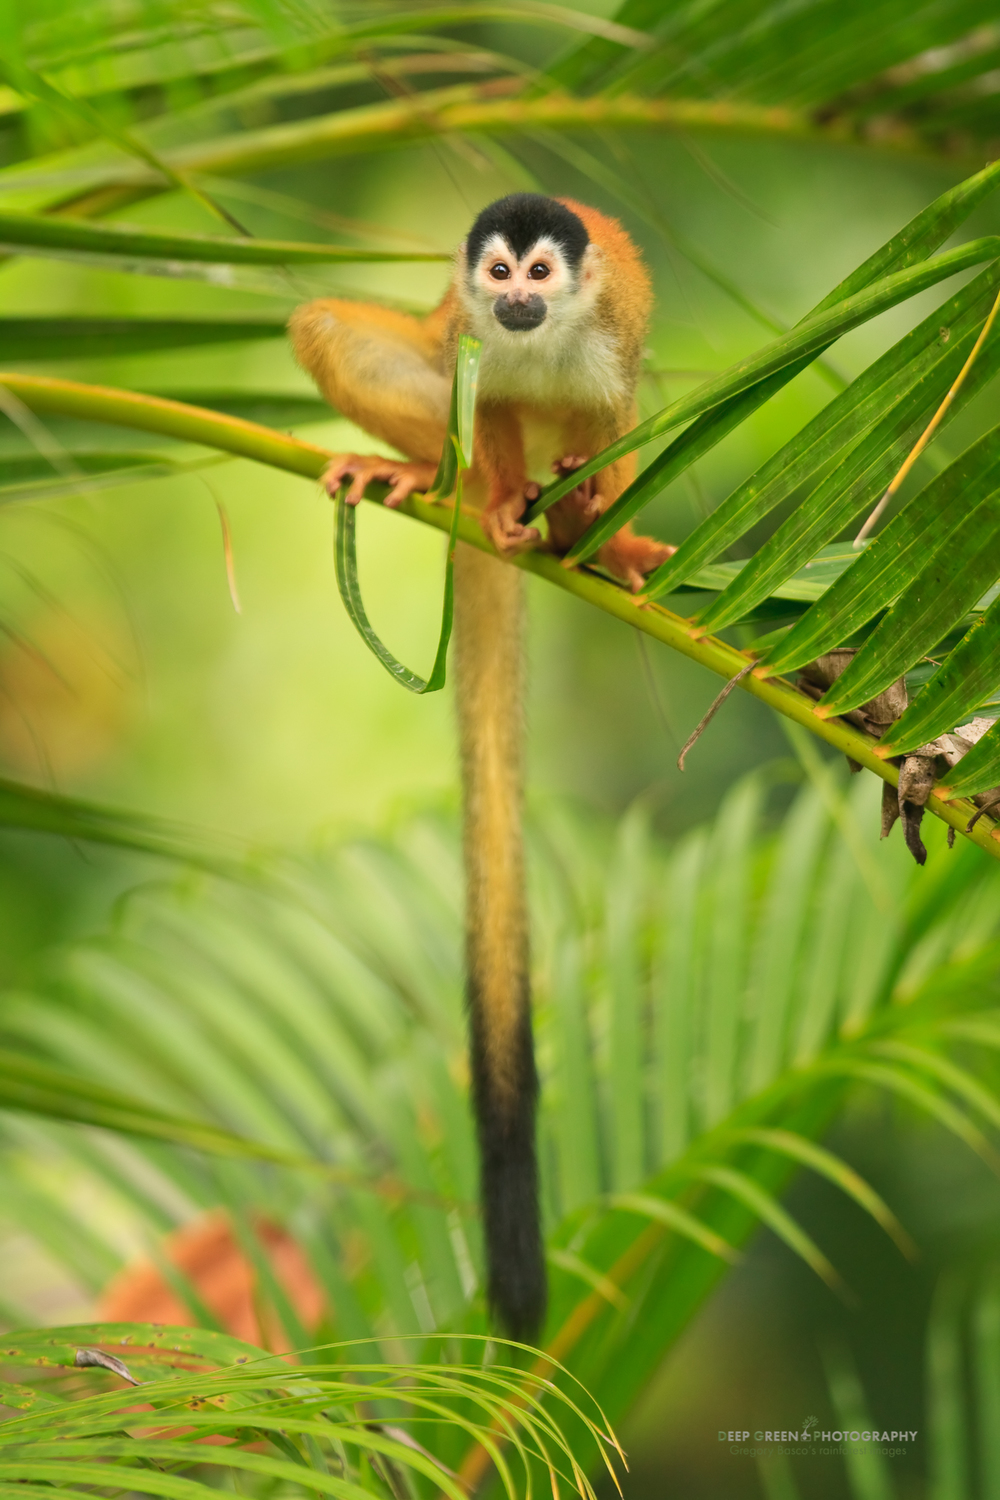 Native only to Costa Rica and Panama, the Black-crowned Central American Squirrel Monkey (Saimiri oerstedii ssp. oerstedii) is classified as endangered by the IUCN.